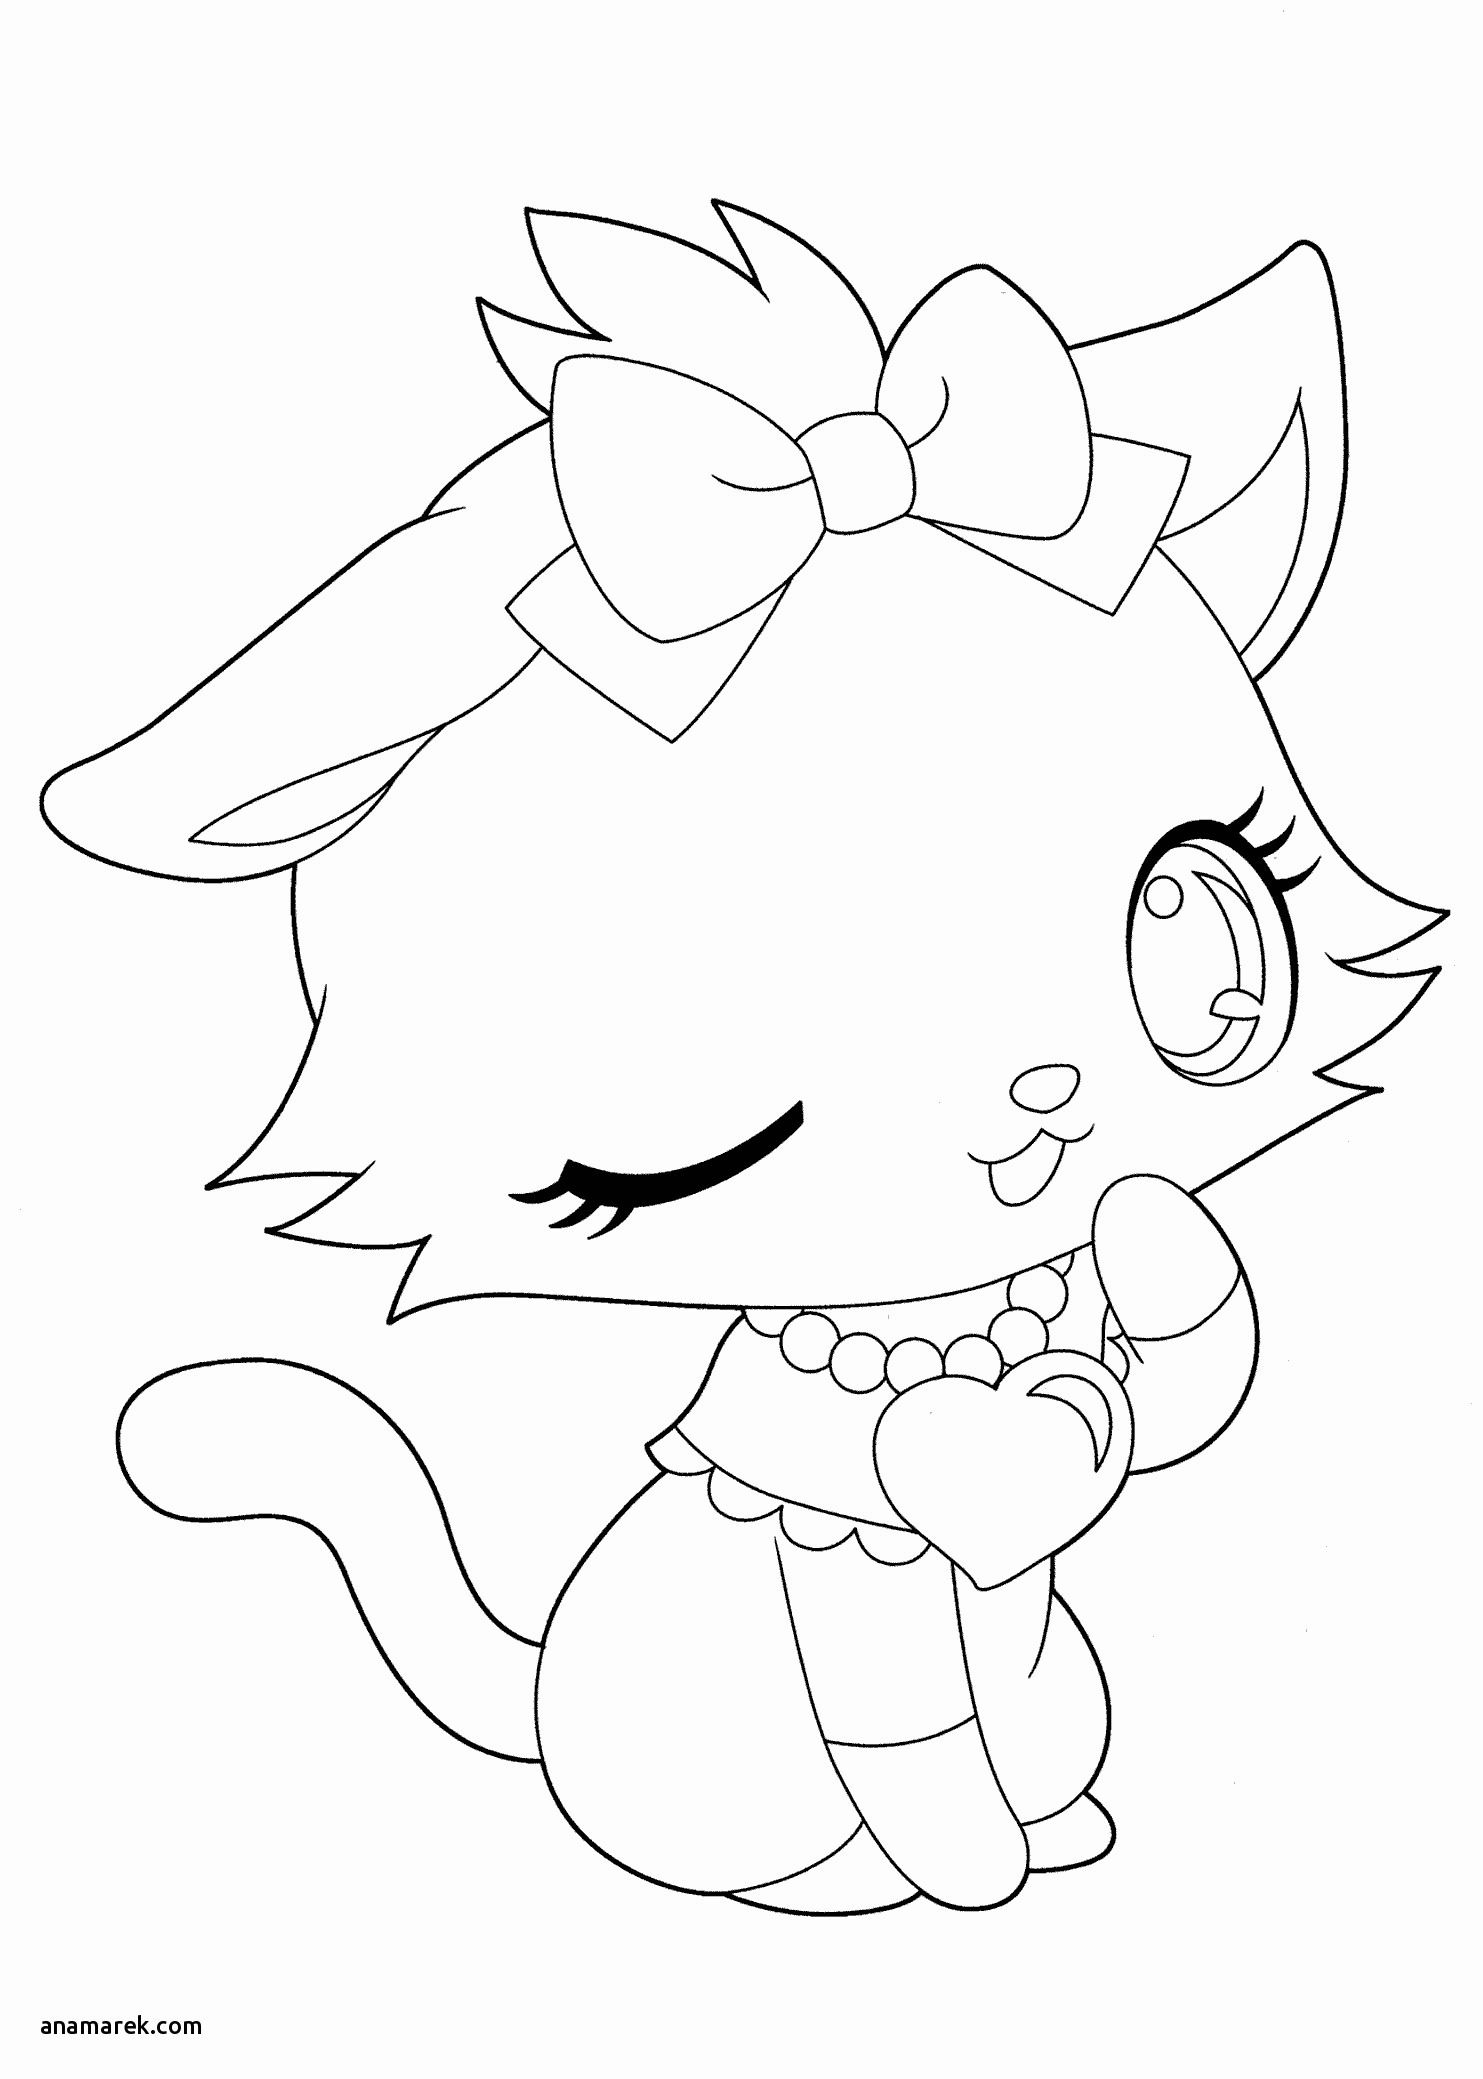 Cartoon Cat Coloring Pages Best Of 39 Most Preeminent Anime Dog Coloring Pages Cartoo Hello Kitty Colouring Pages Unicorn Coloring Pages Mermaid Coloring Pages